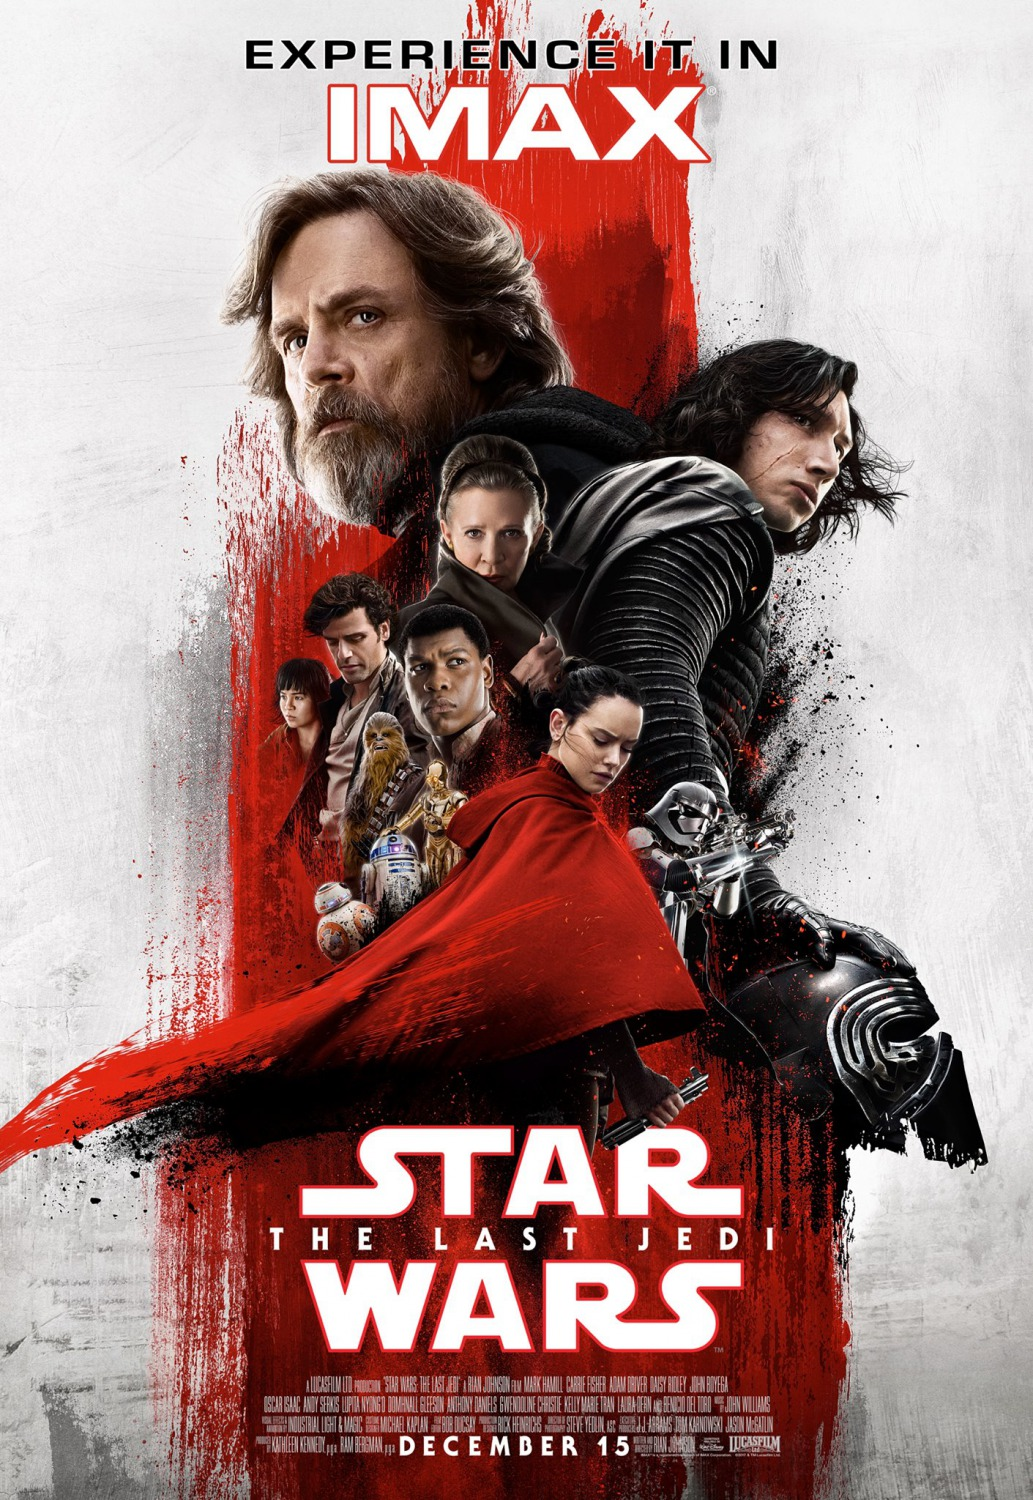 Star Wars: The Last Jedi IMAX Movie Poster